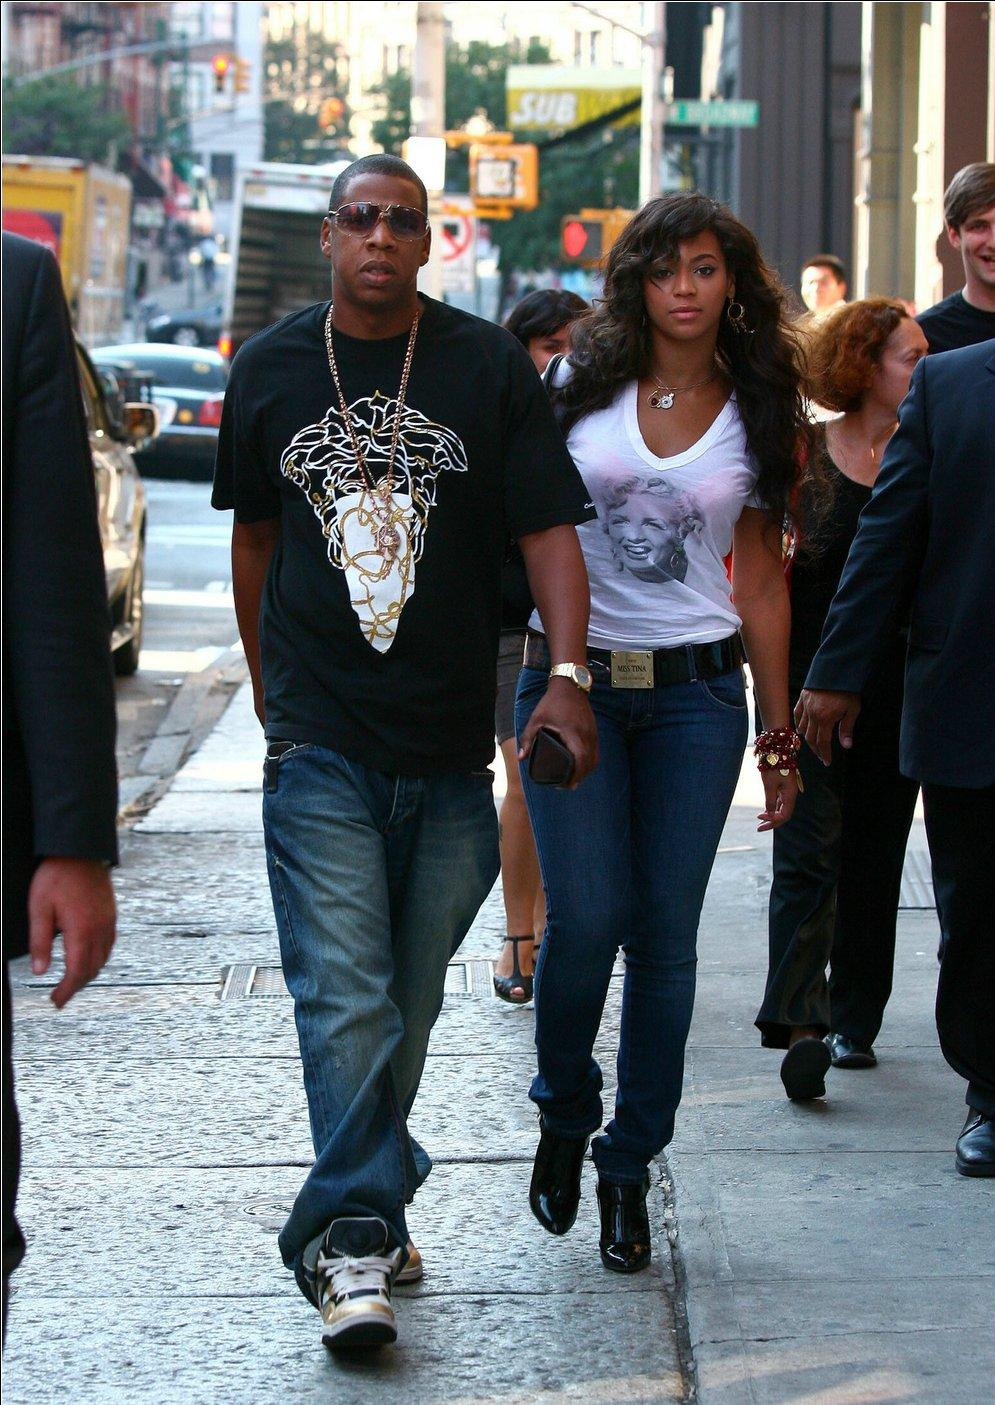 Jay Z Mother and Sister http://www.relevantmindset.net/2011/01/jay-z-to-own-chicken-wing-spot-buffalo.html